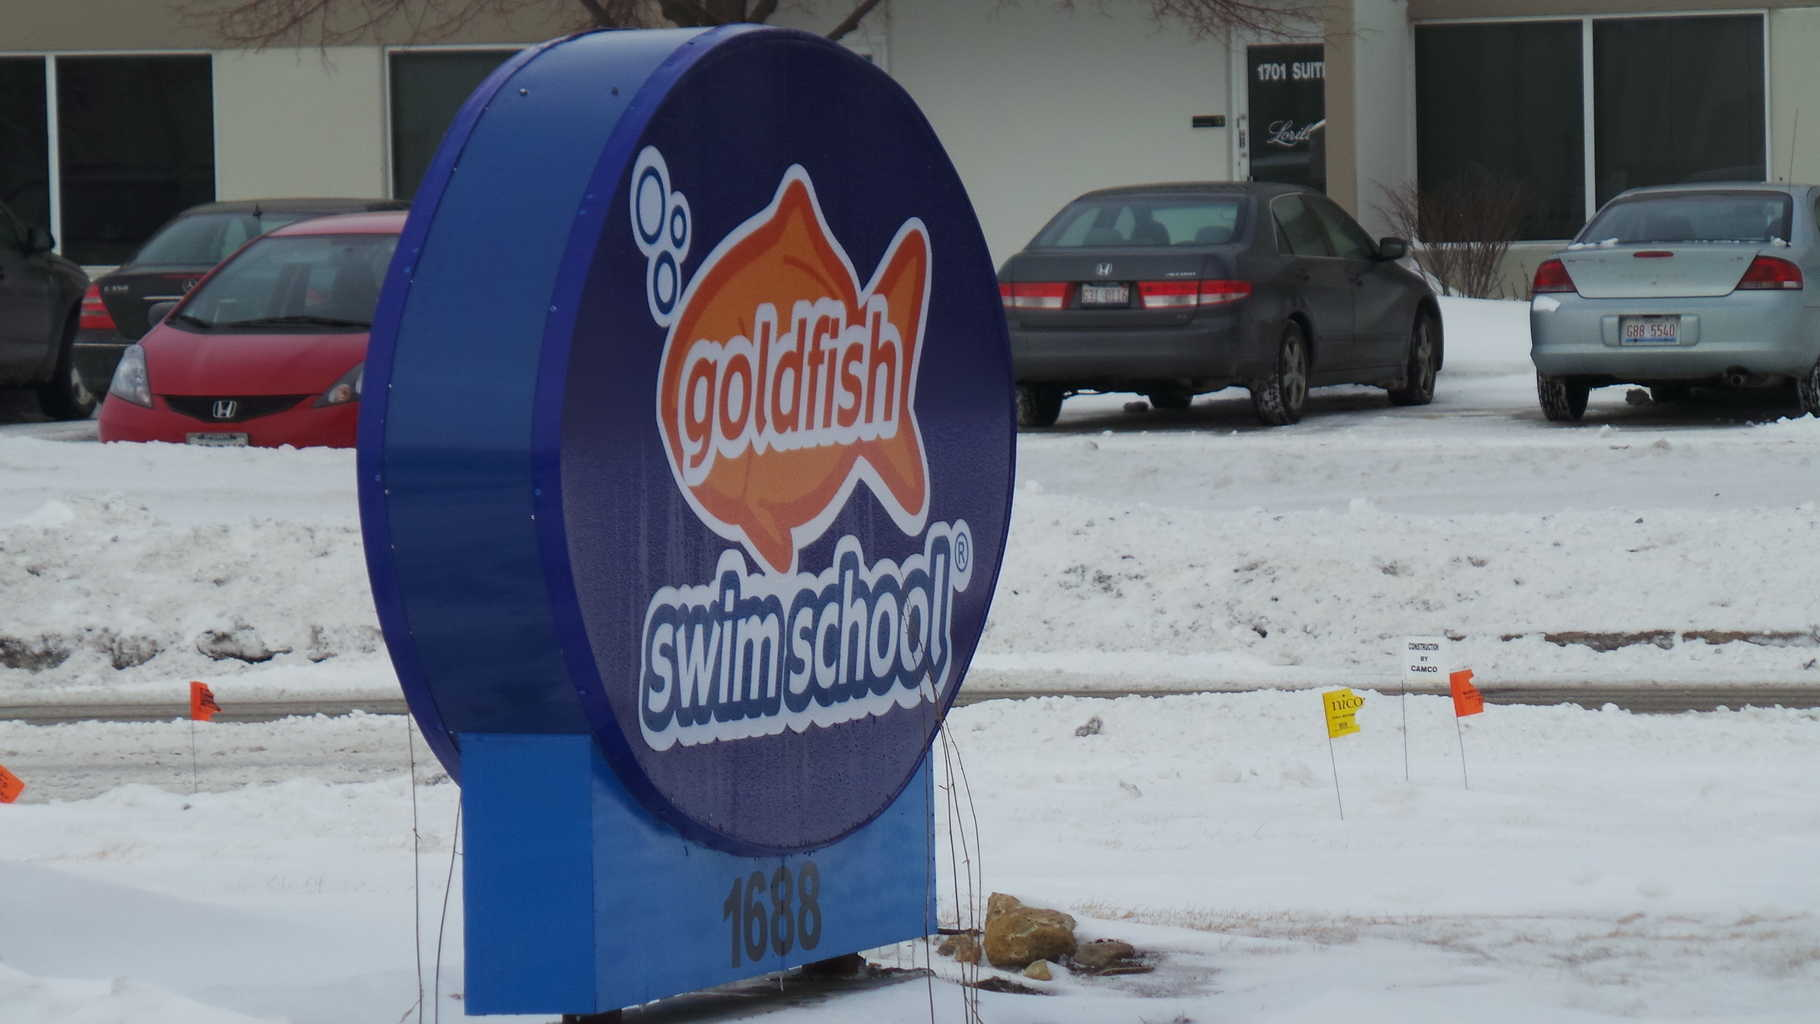 Goldfish Swim School:  The Lessons